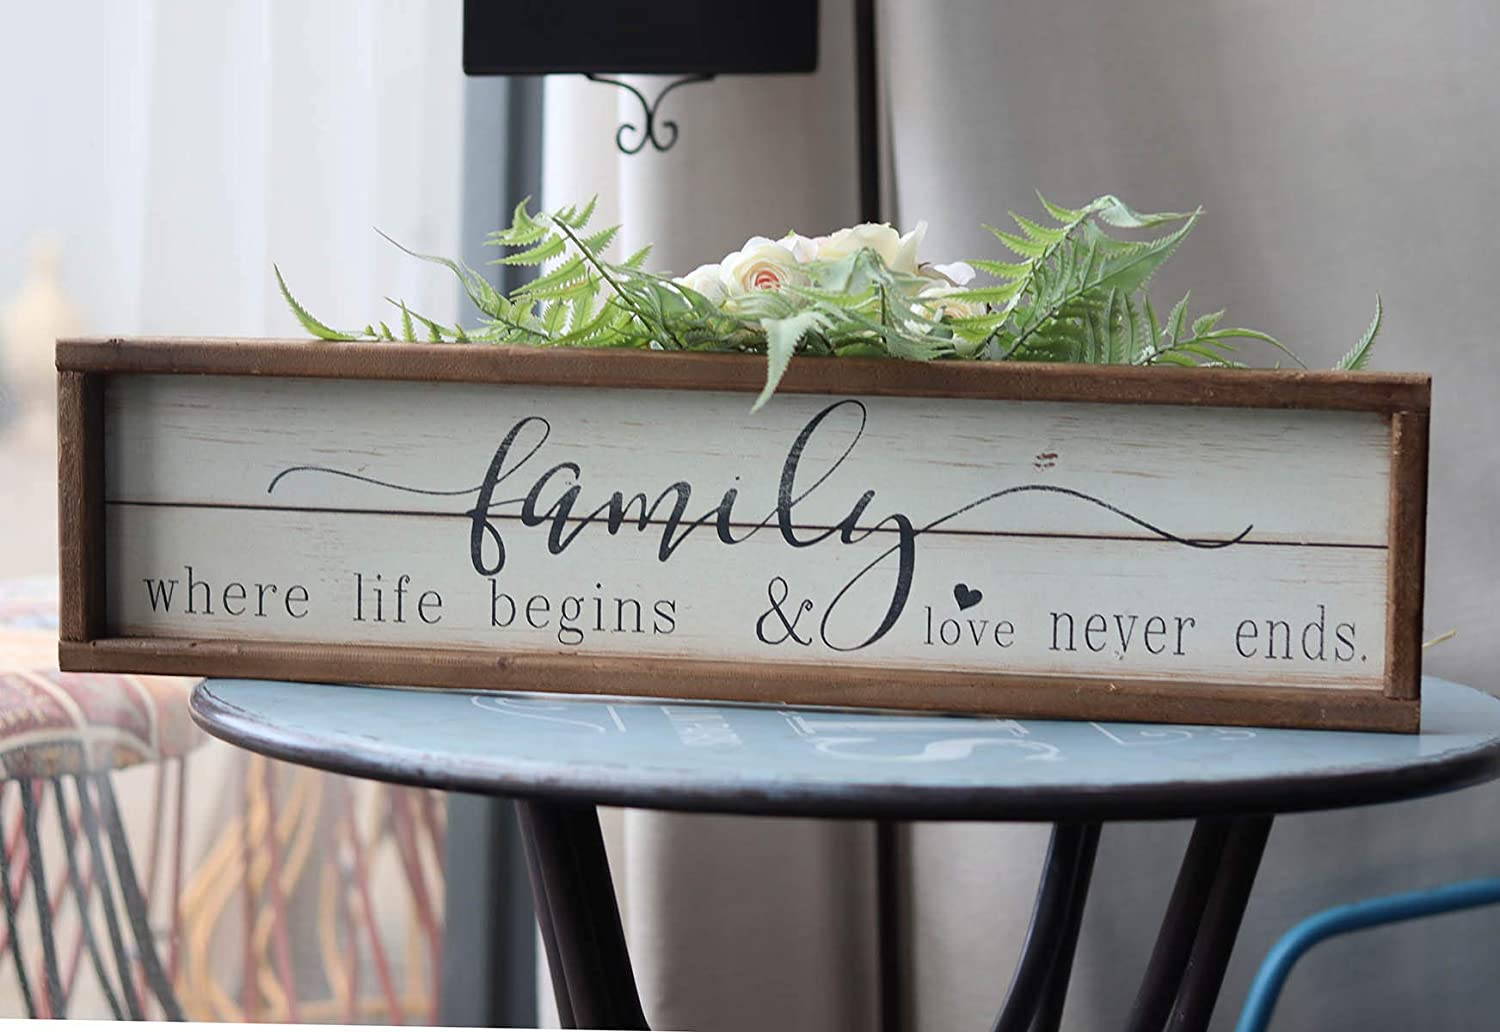 "Farmhouse Rustic Wood Framed Family Wall Decor - Where Family Life Begins & Love Never Ends | Inspirational Wall Sign Wood Plaque for Home Decor | 23.6"" W x 6"" H"